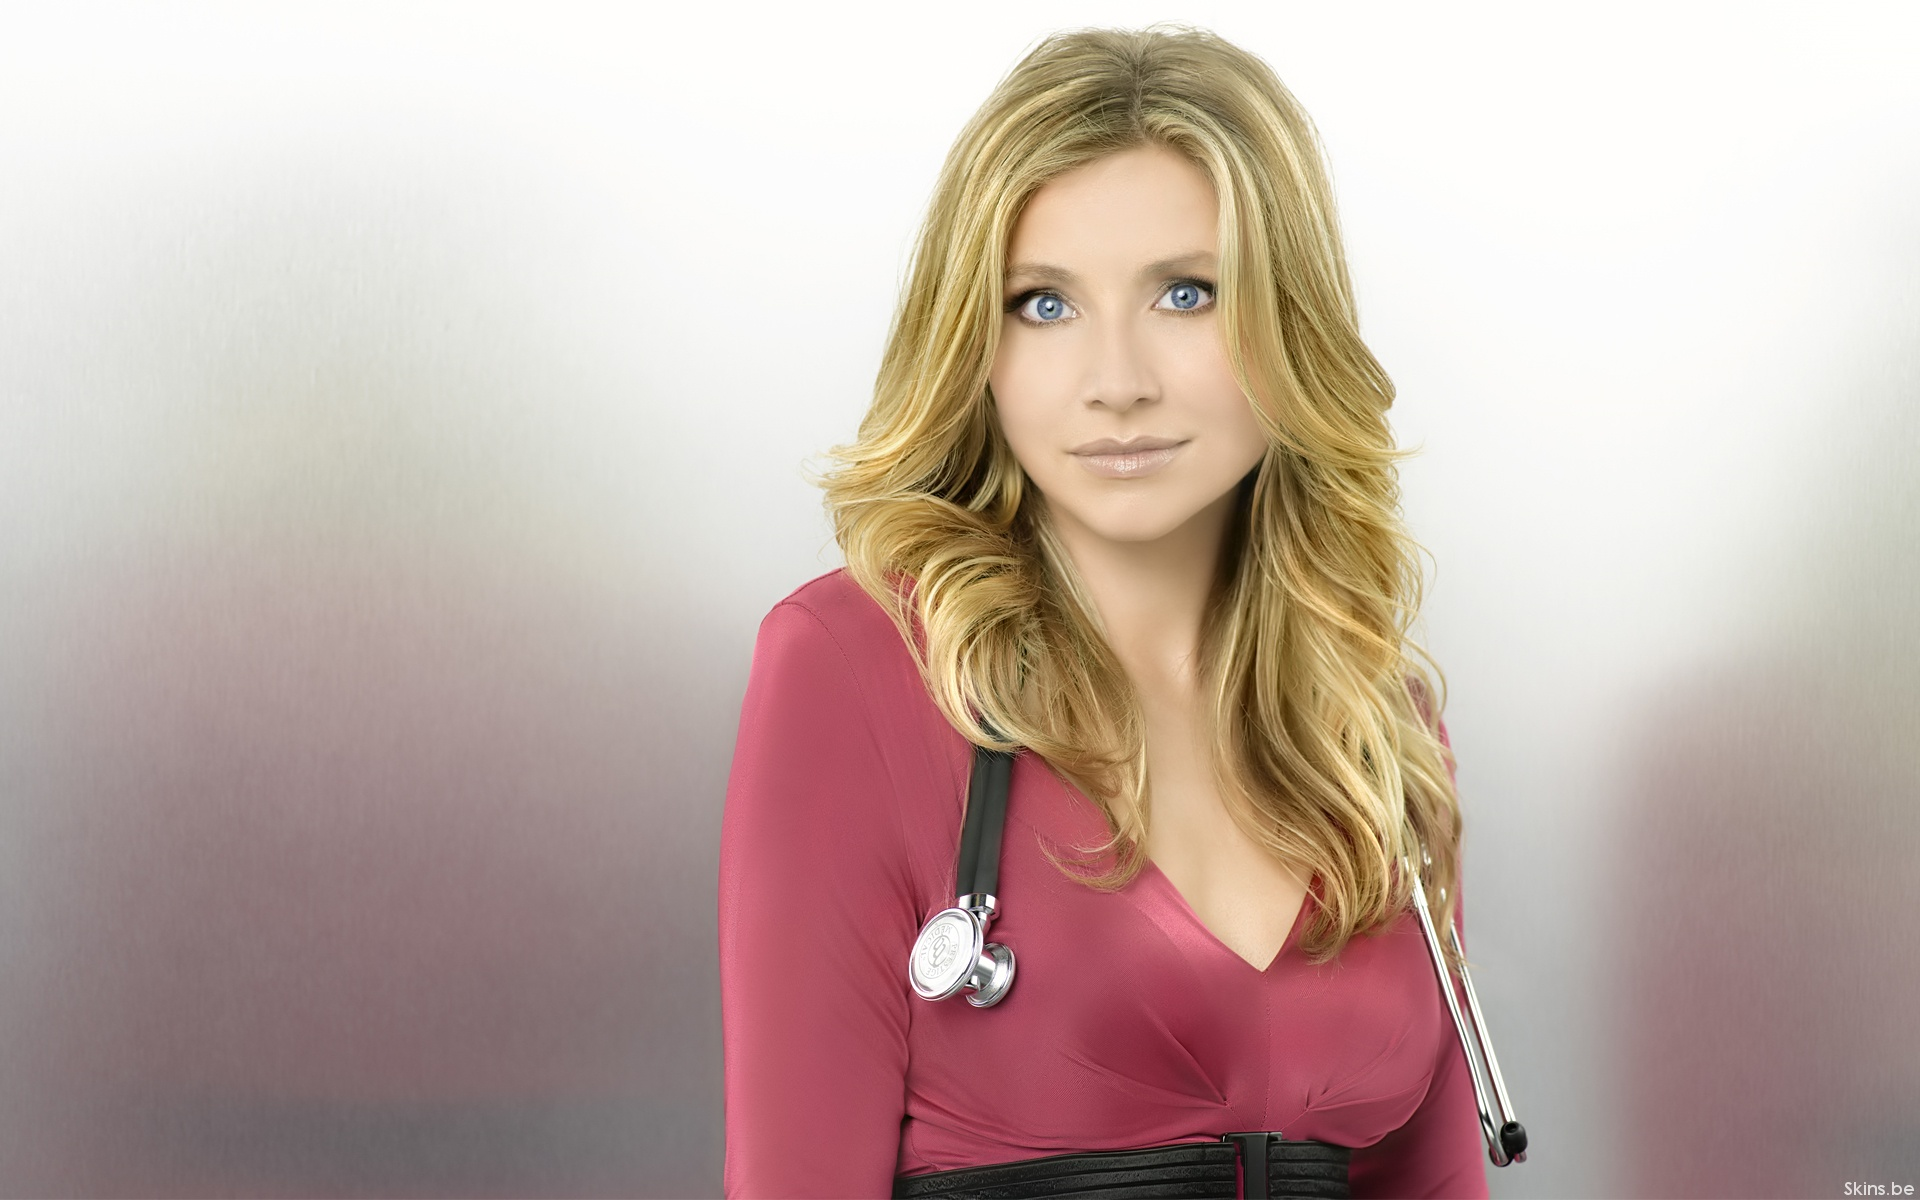 women, blue eyes, Scrubs, Sarah Chalke, Elliot Reed, stethoscopes - desktop wallpaper